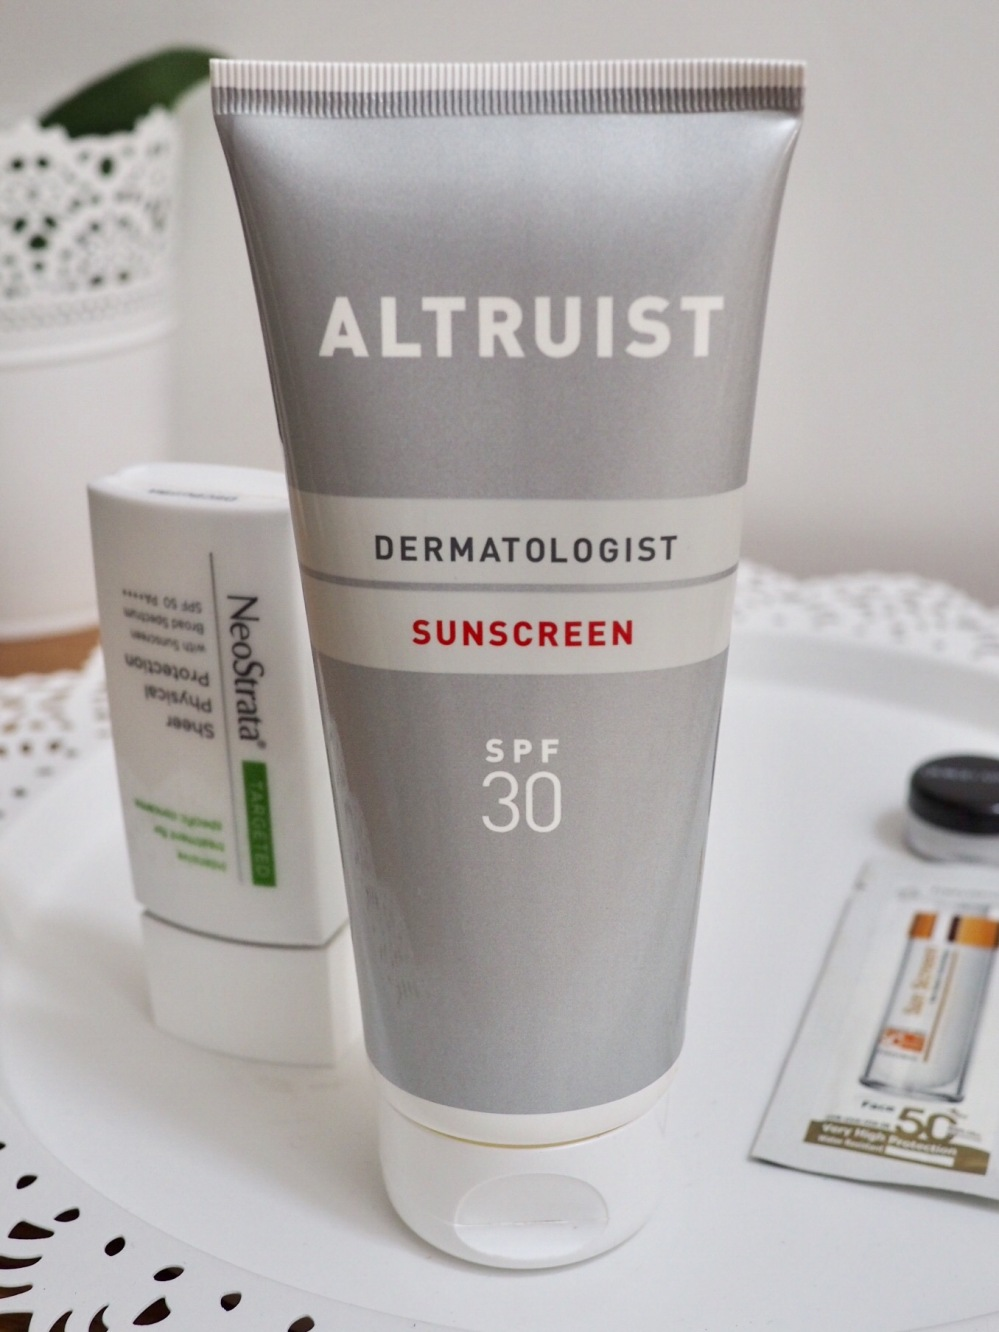 The Best Sunscreen Products for Oily, Acne Prone and Sensitive Skin- tube of Altruist sunscreen